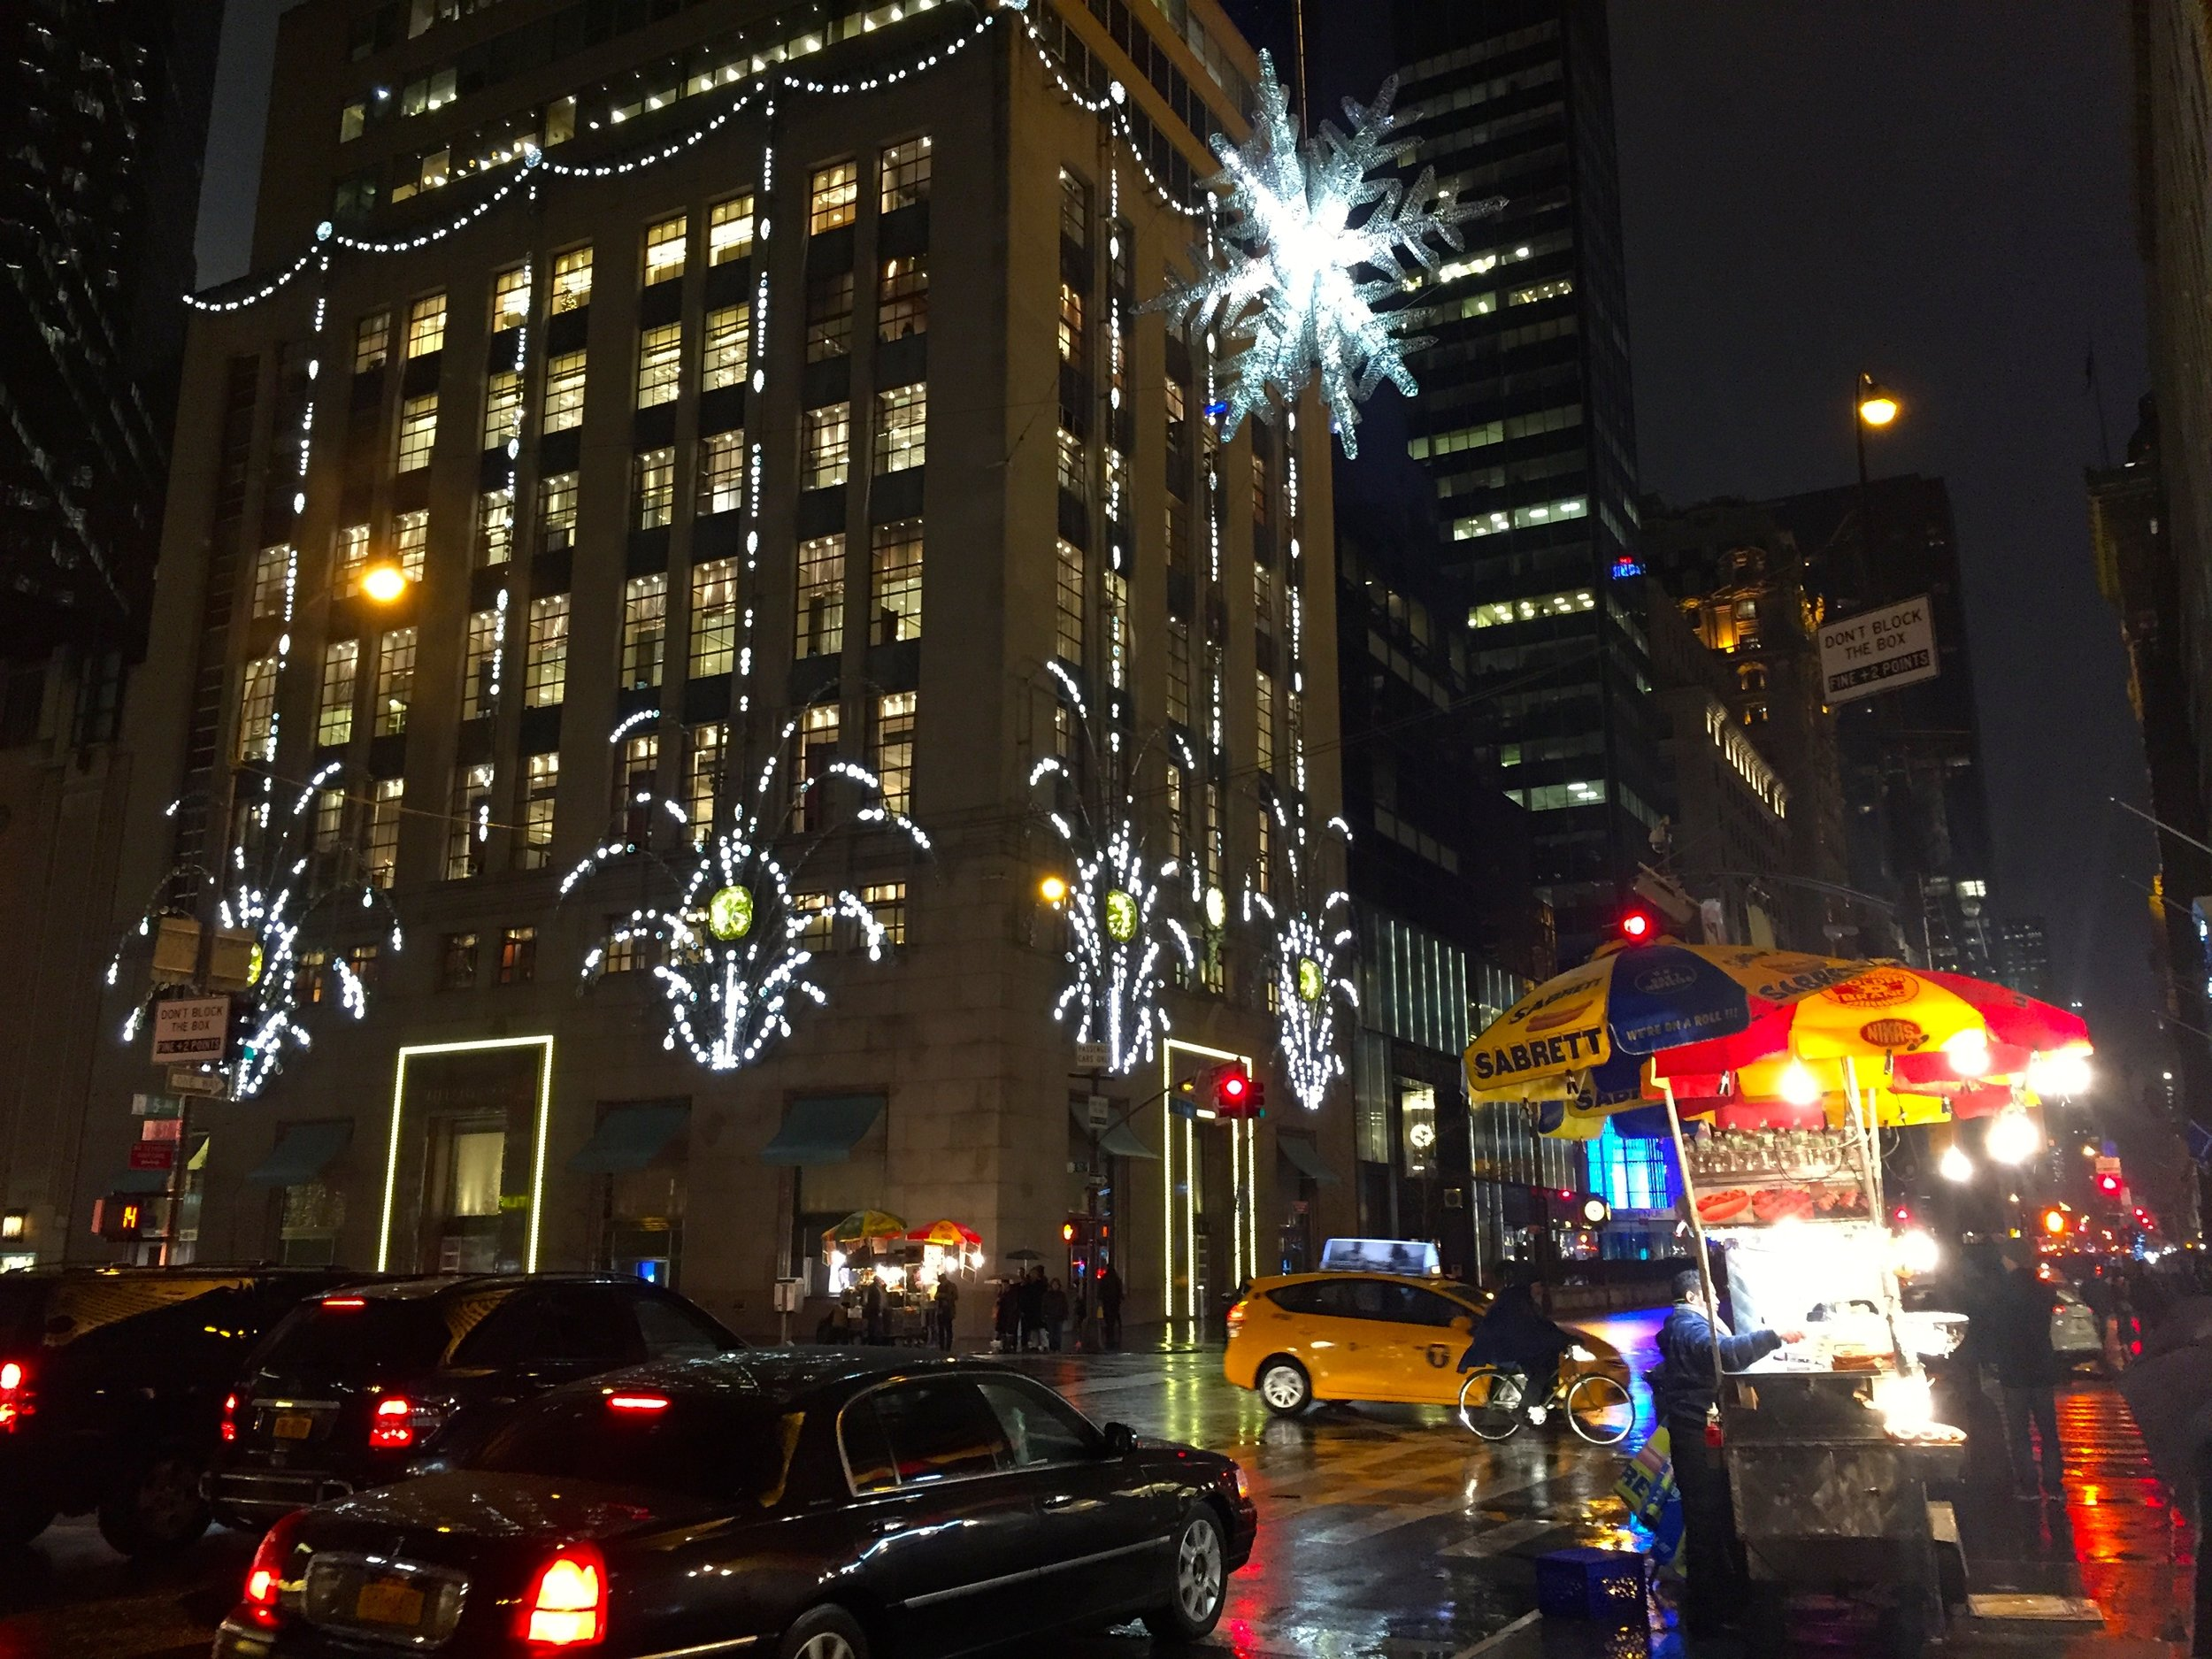 5th Ave Snow Flake